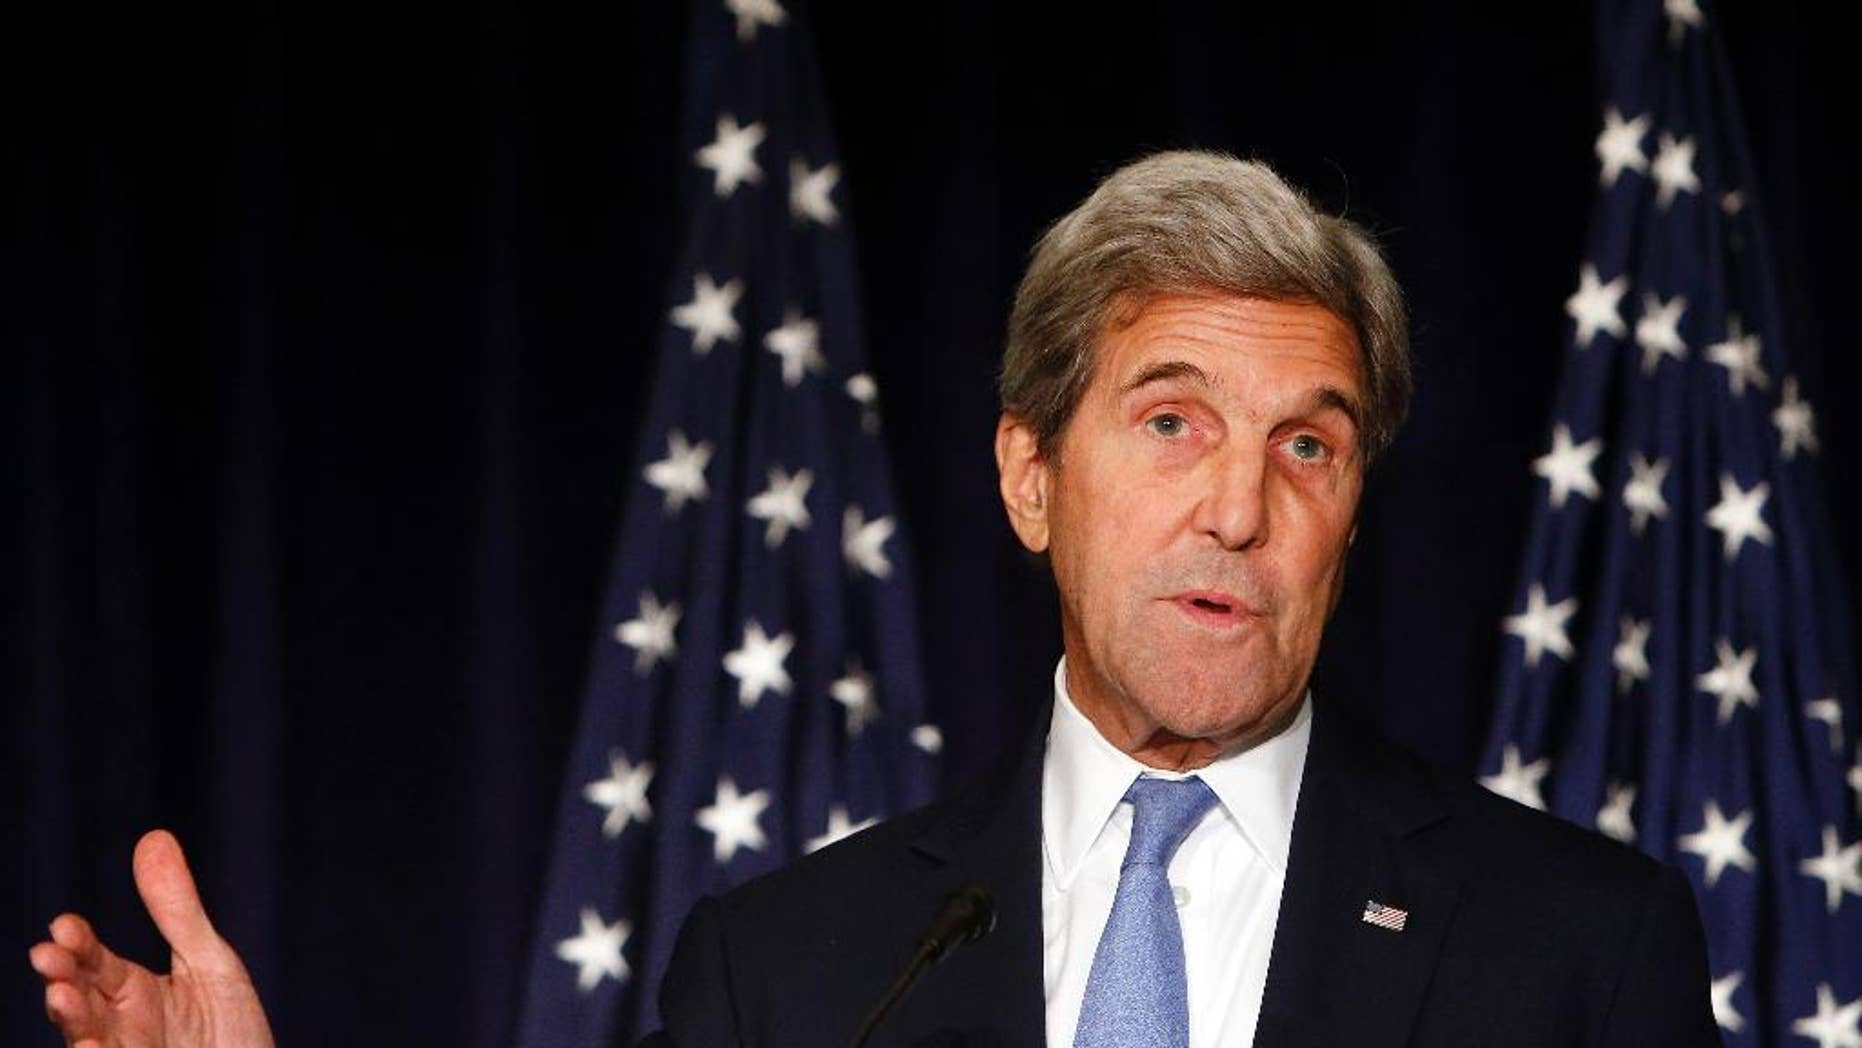 FILE - In this Sept. 22, 2016 file photo, Secretary of State John Kerry speaks in New York. Kerry is threatening to cut off all contacts with Moscow over Syria, unless Russian and Syrian government attacks on Aleppo end. The State Department says Kerry issued the ultimatum in a Wednesday, Sept. 28, 2016,  telephone call to Russian Foreign Minister Sergey Lavrov.(AP Photo/Jason DeCrow, File)